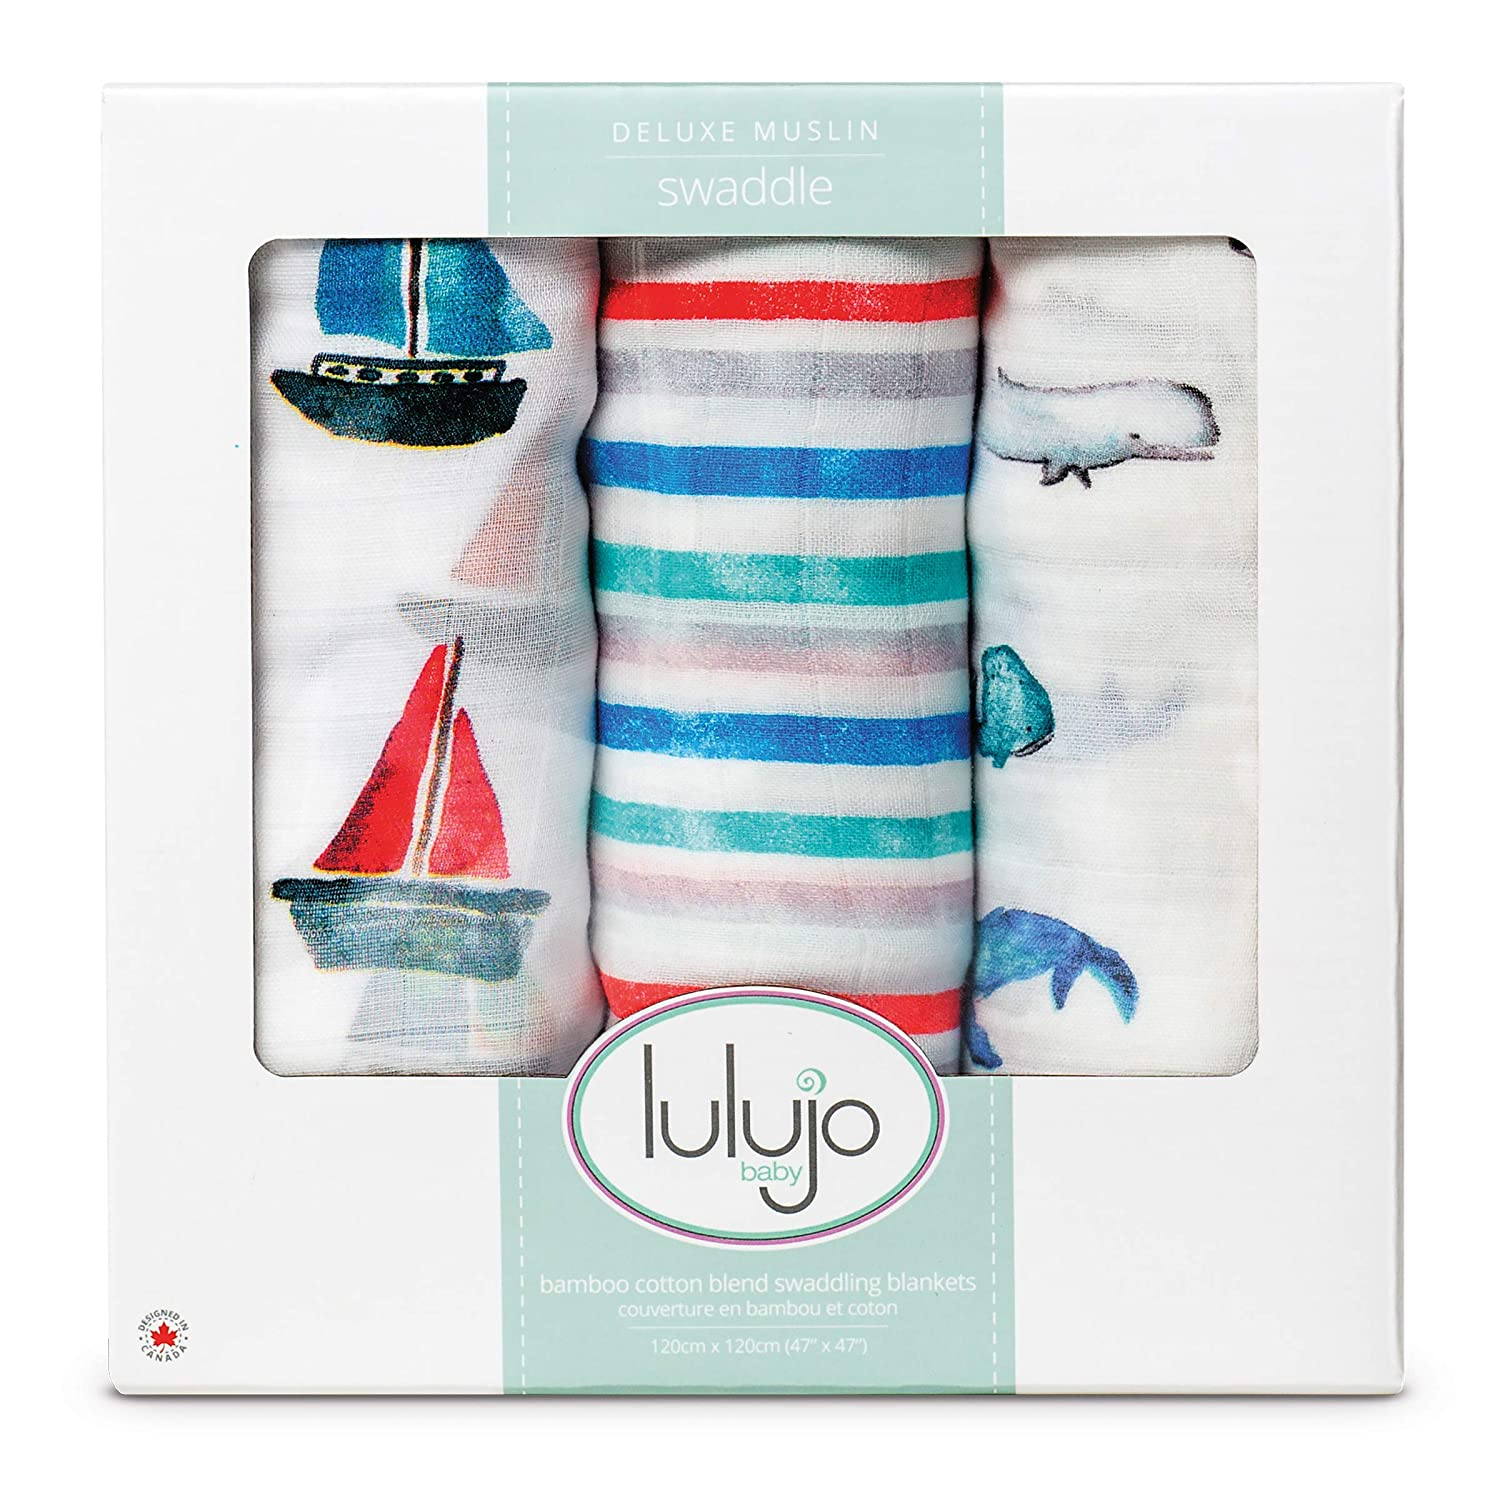 Lulujo Baby Set of 3 Deluxe Muslin Swaddle Blankets, Out at Sea, 47 x 47-Inch